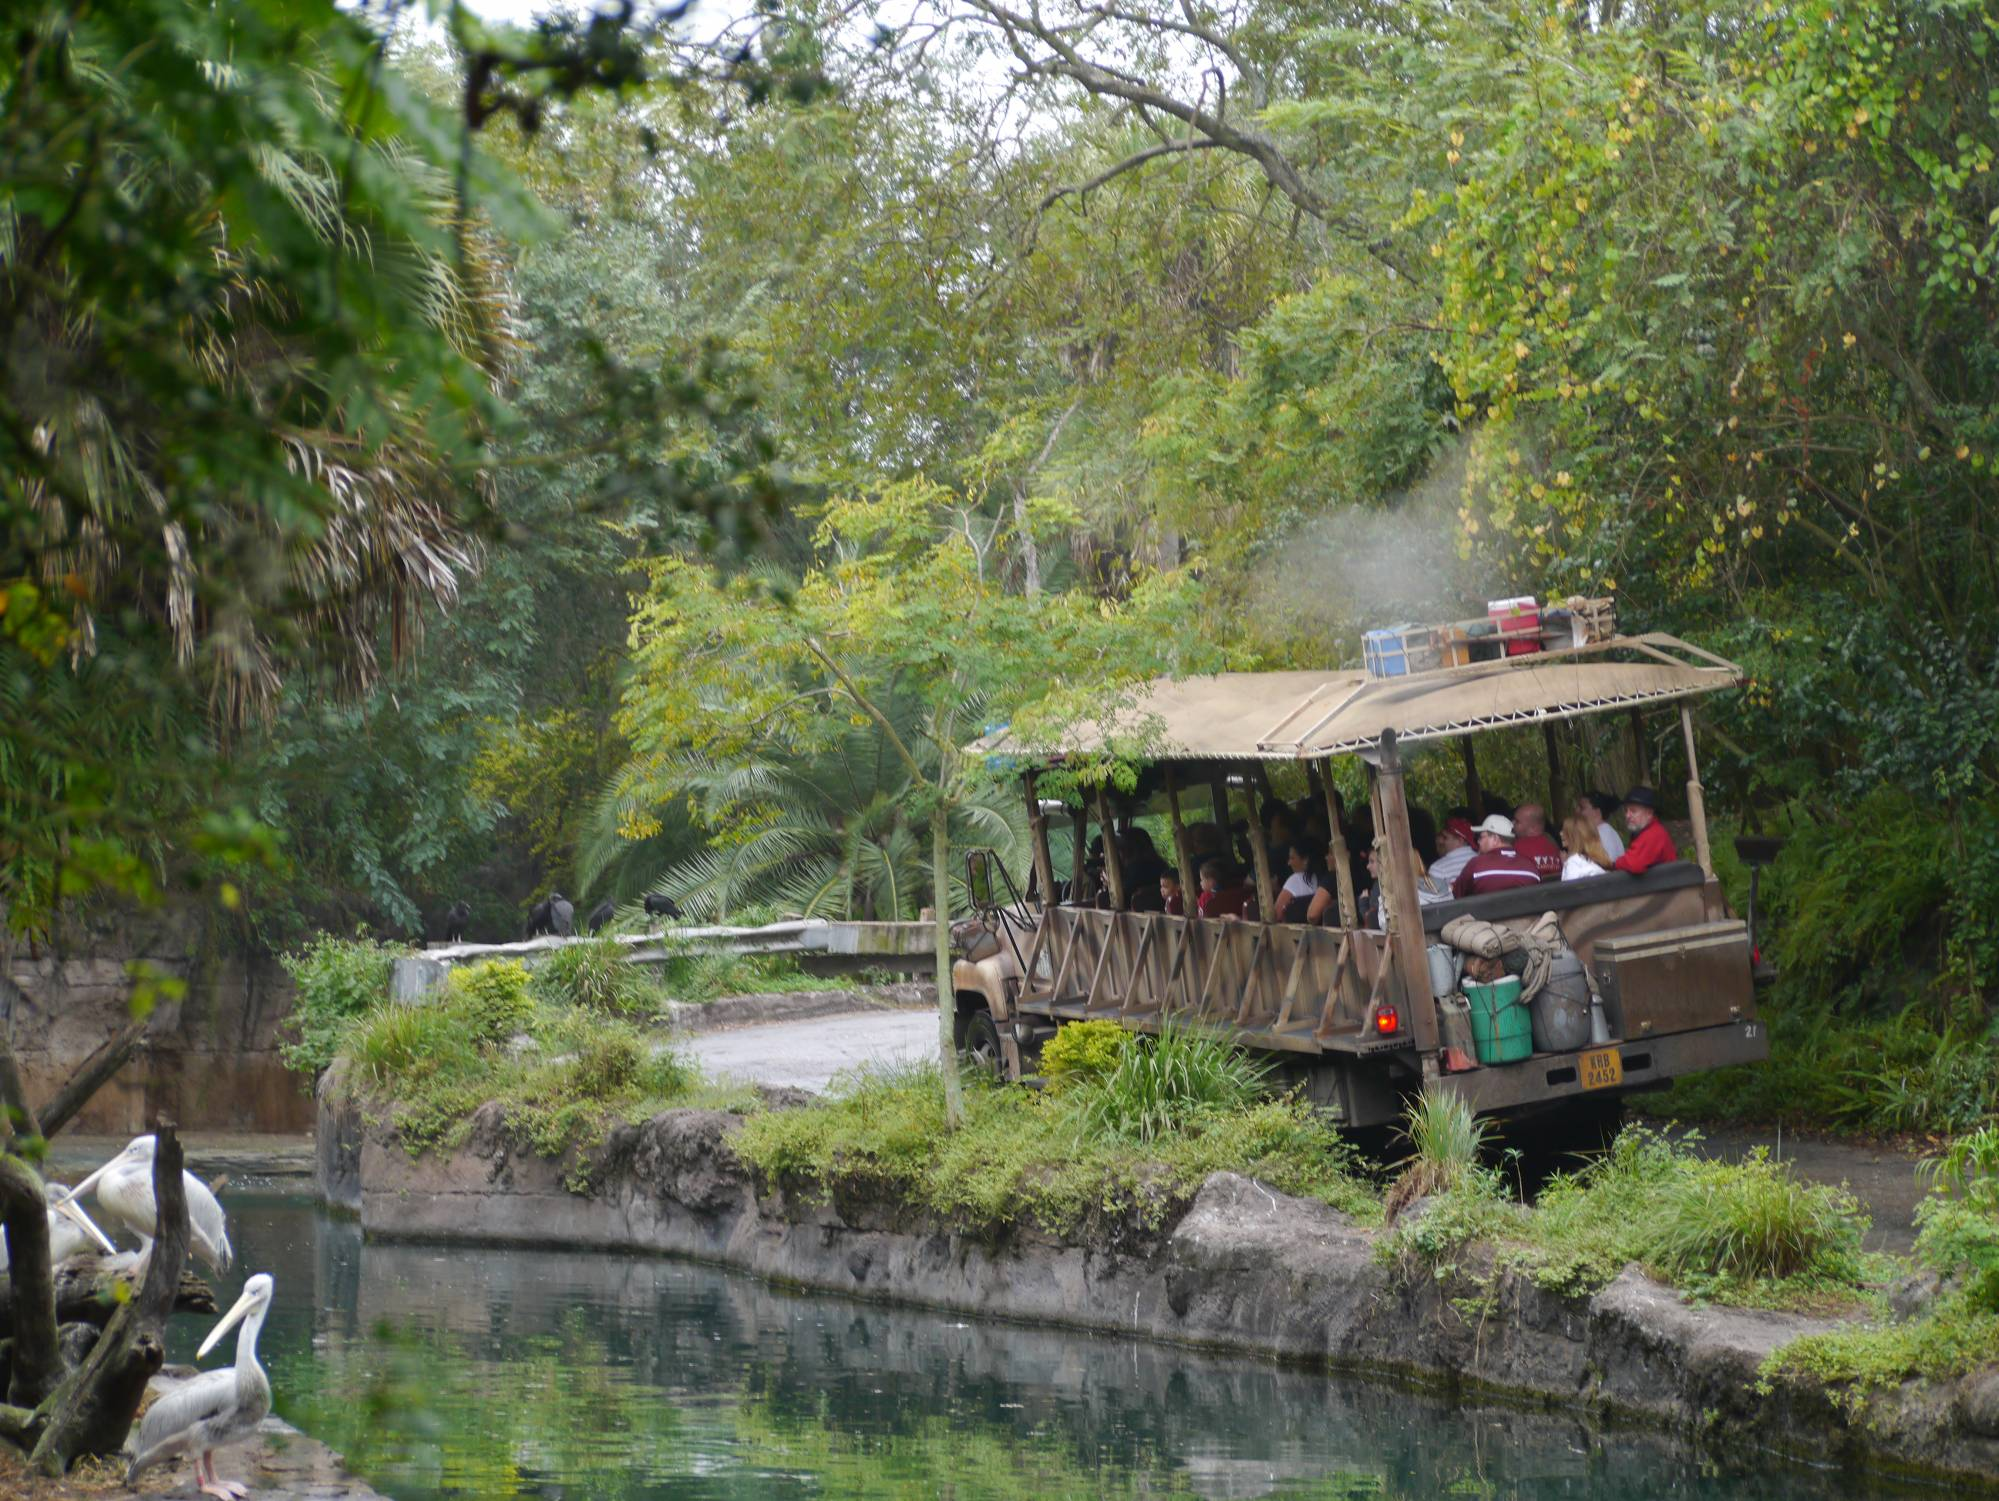 What traditions does your family have on your Disney vacations? |PassPorter.com